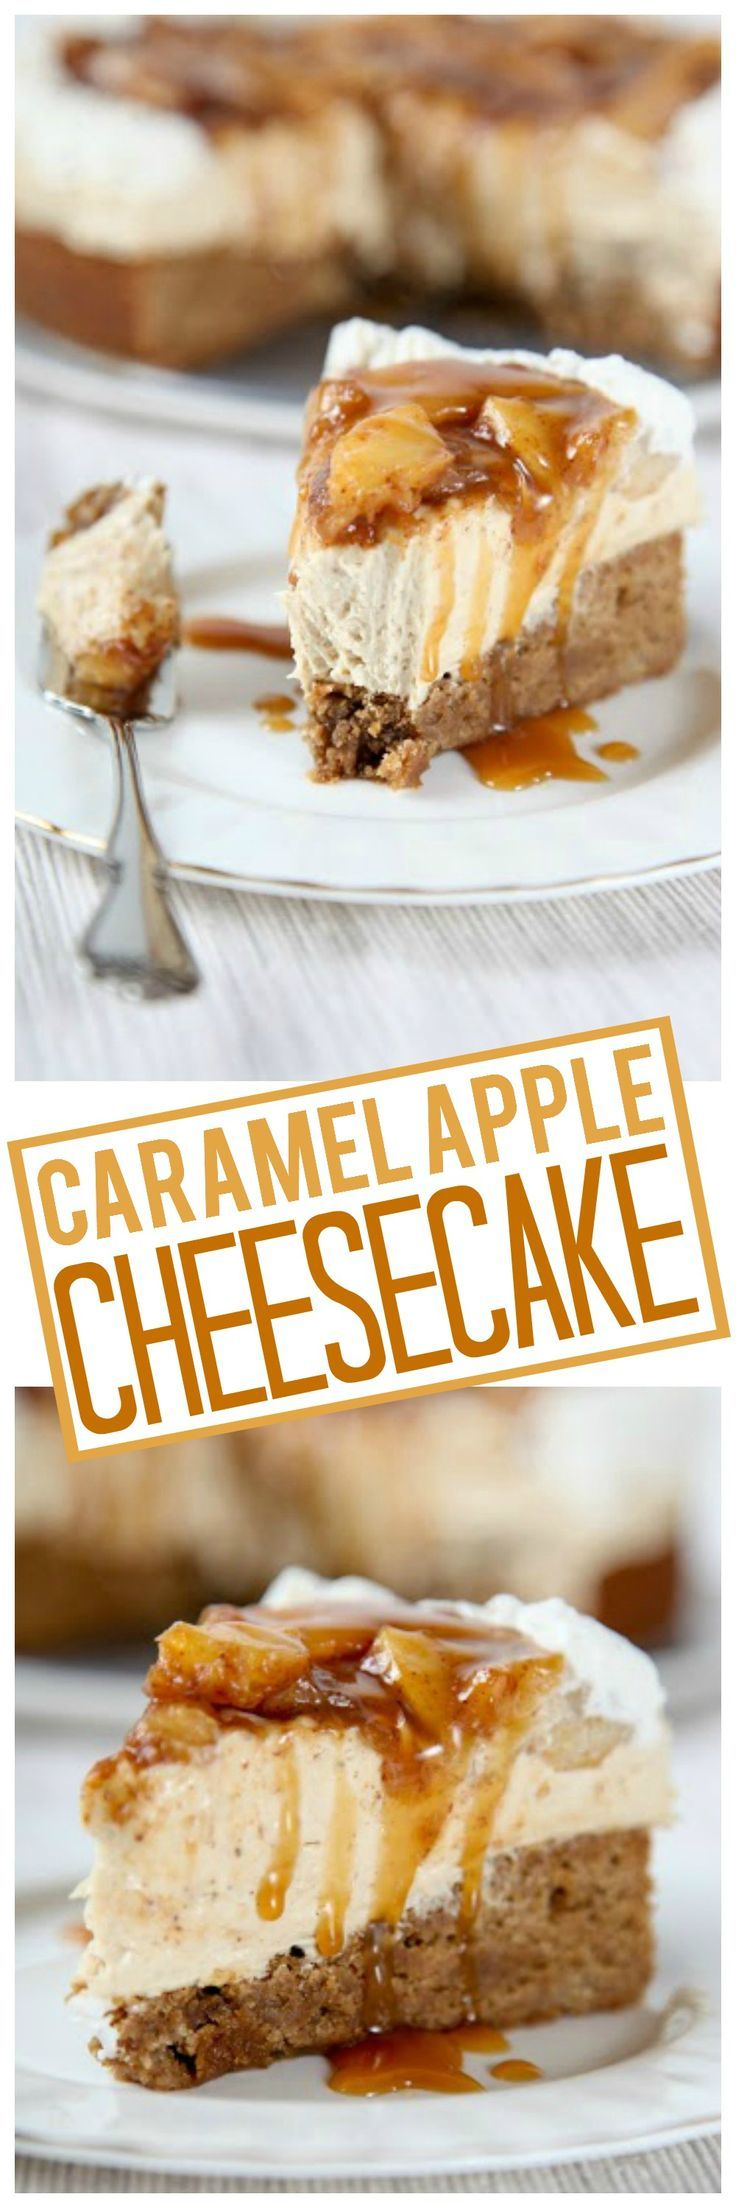 Creamy caramel cheesecake inside a Cinnamon blondie crust topped with cinnamon apples and a decadent caramel drizzle.: Creamy caramel cheesecake inside a Cinnamon blondie crust topped with cinnamon apples and a decadent caramel drizzle.